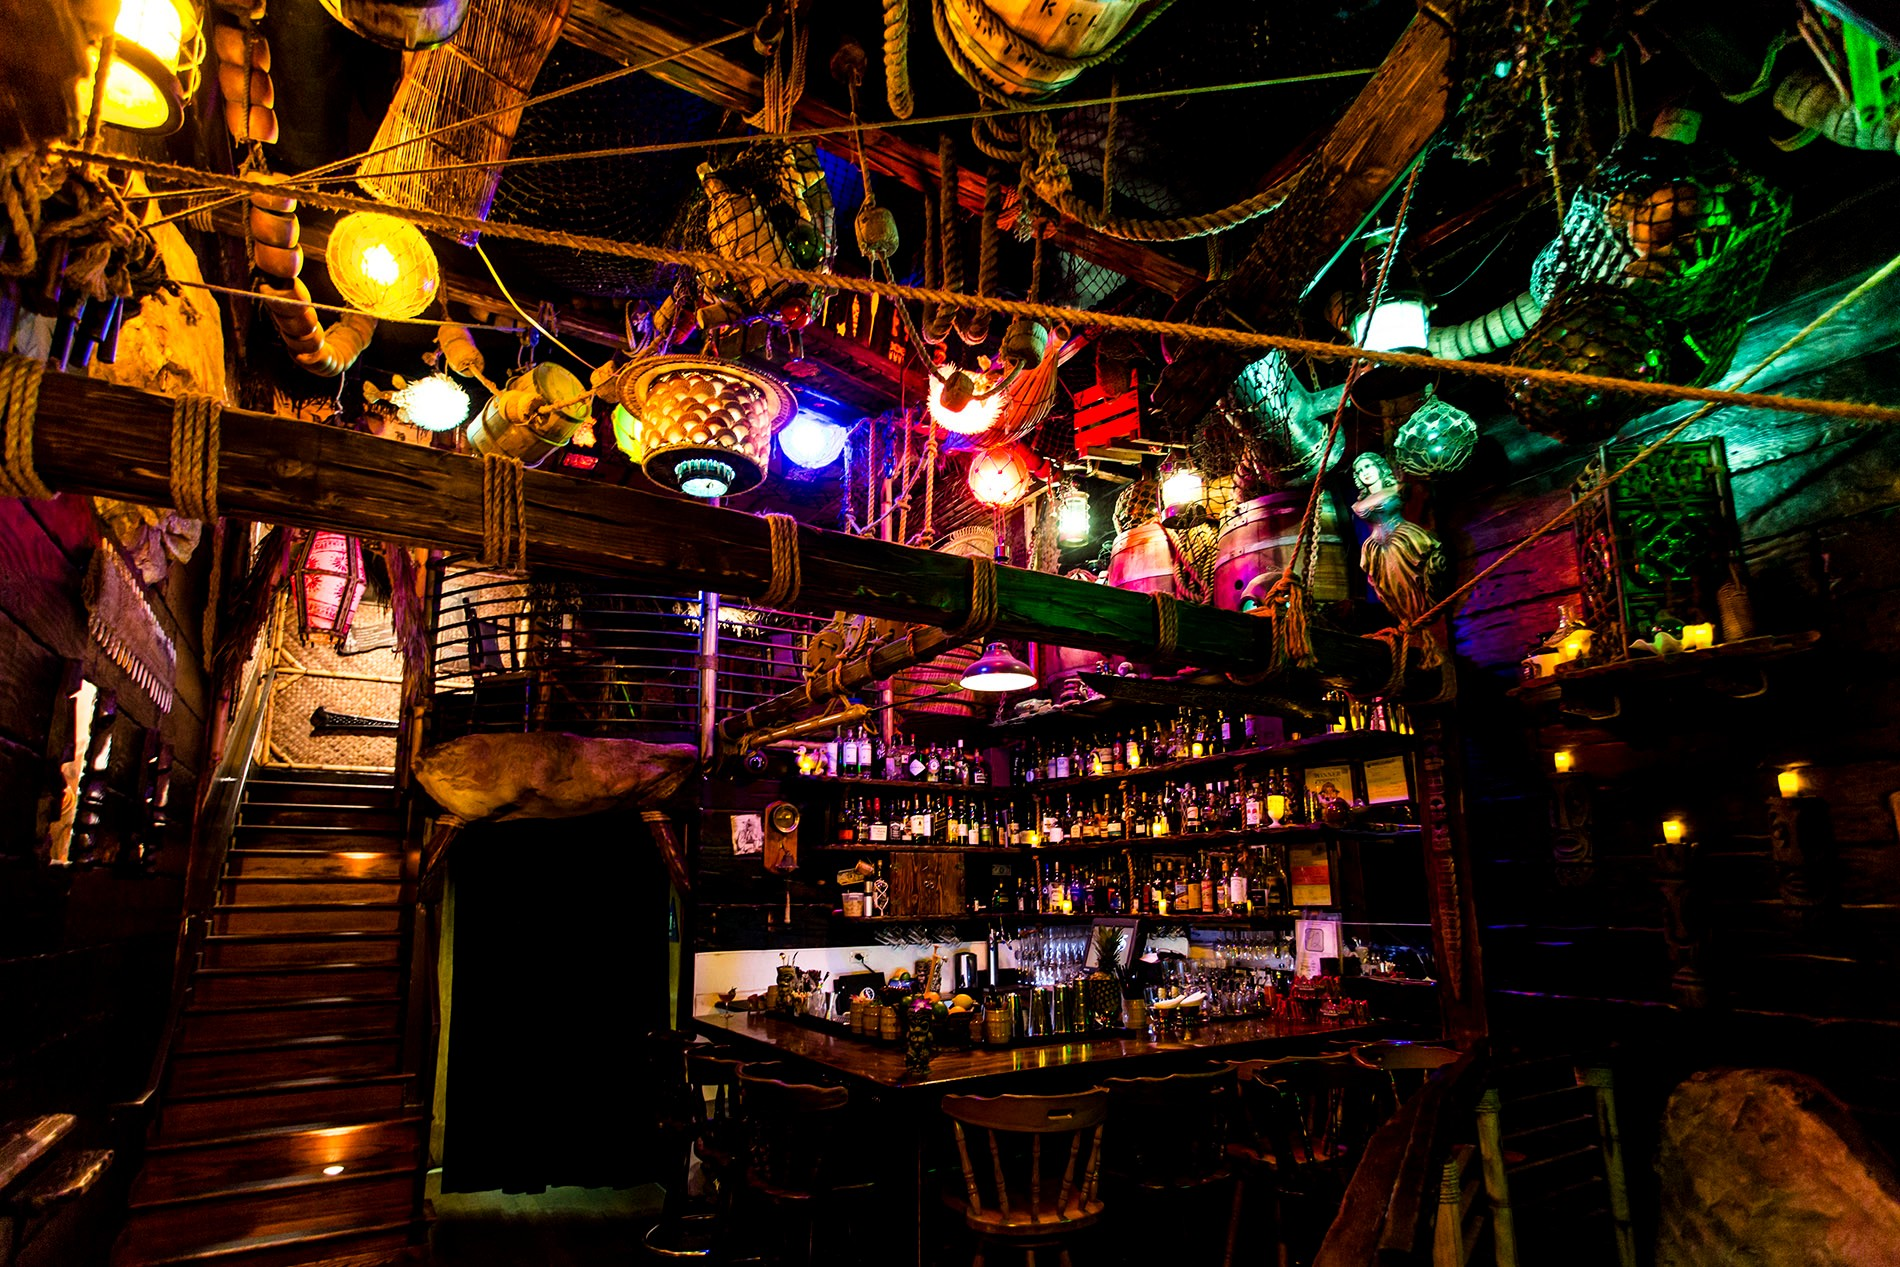 Interior of Smuggler's Cove. Photo by Kelly Puleio